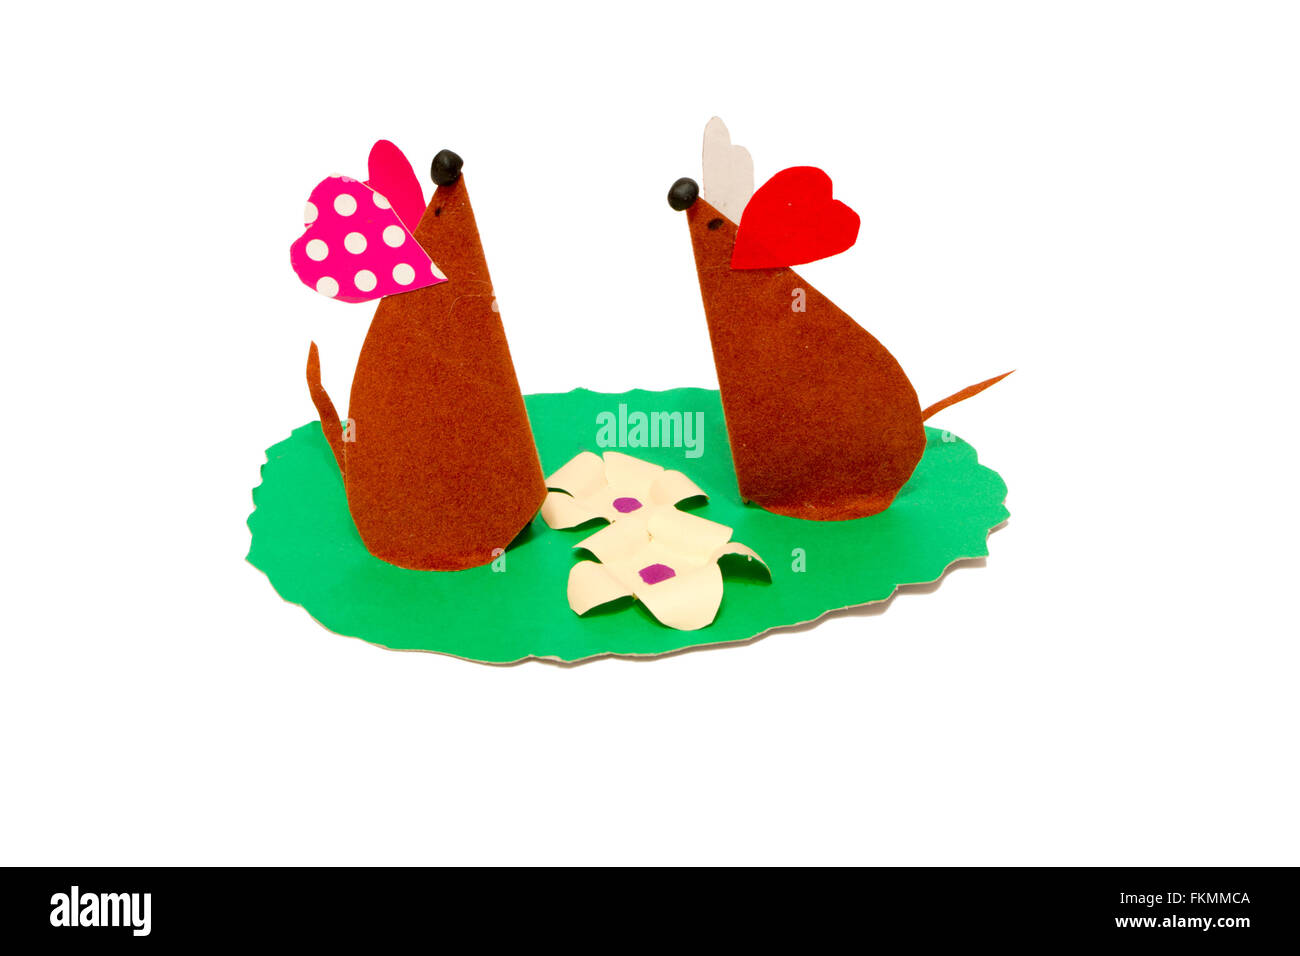 children's creativity from paper two mouse on the lawn - Stock Image